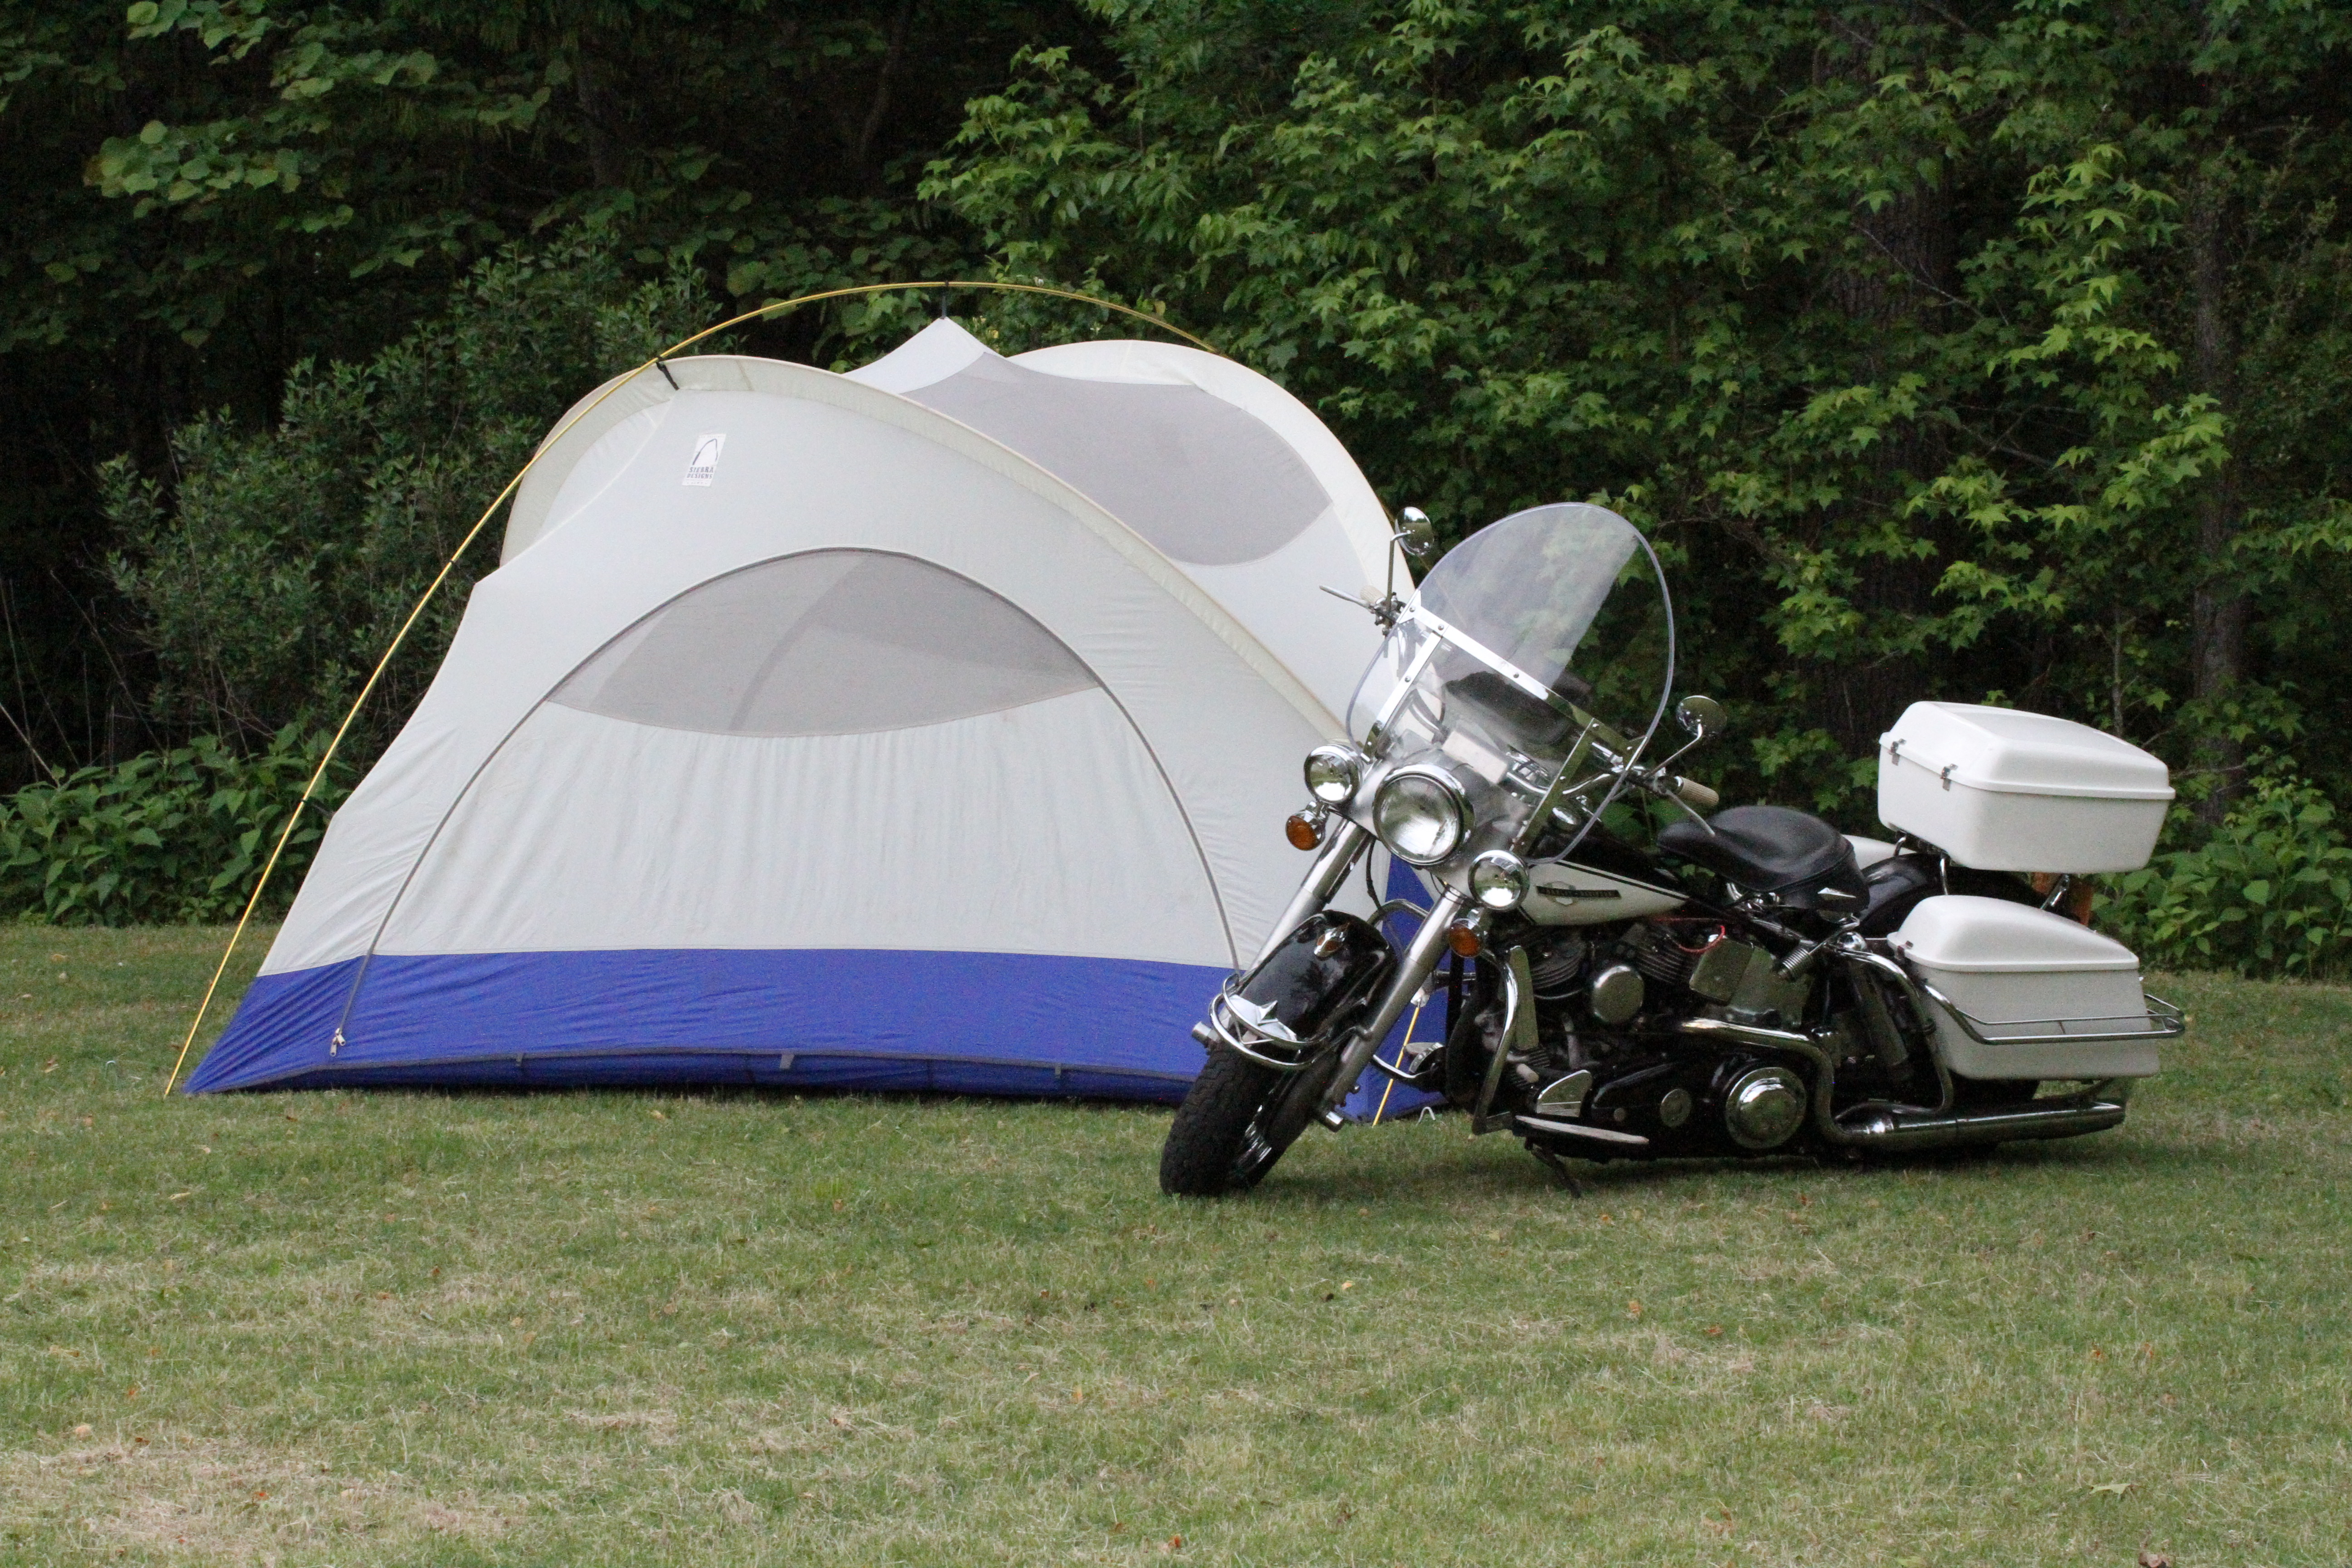 & Motorcycle camping: The basics you need to get out there